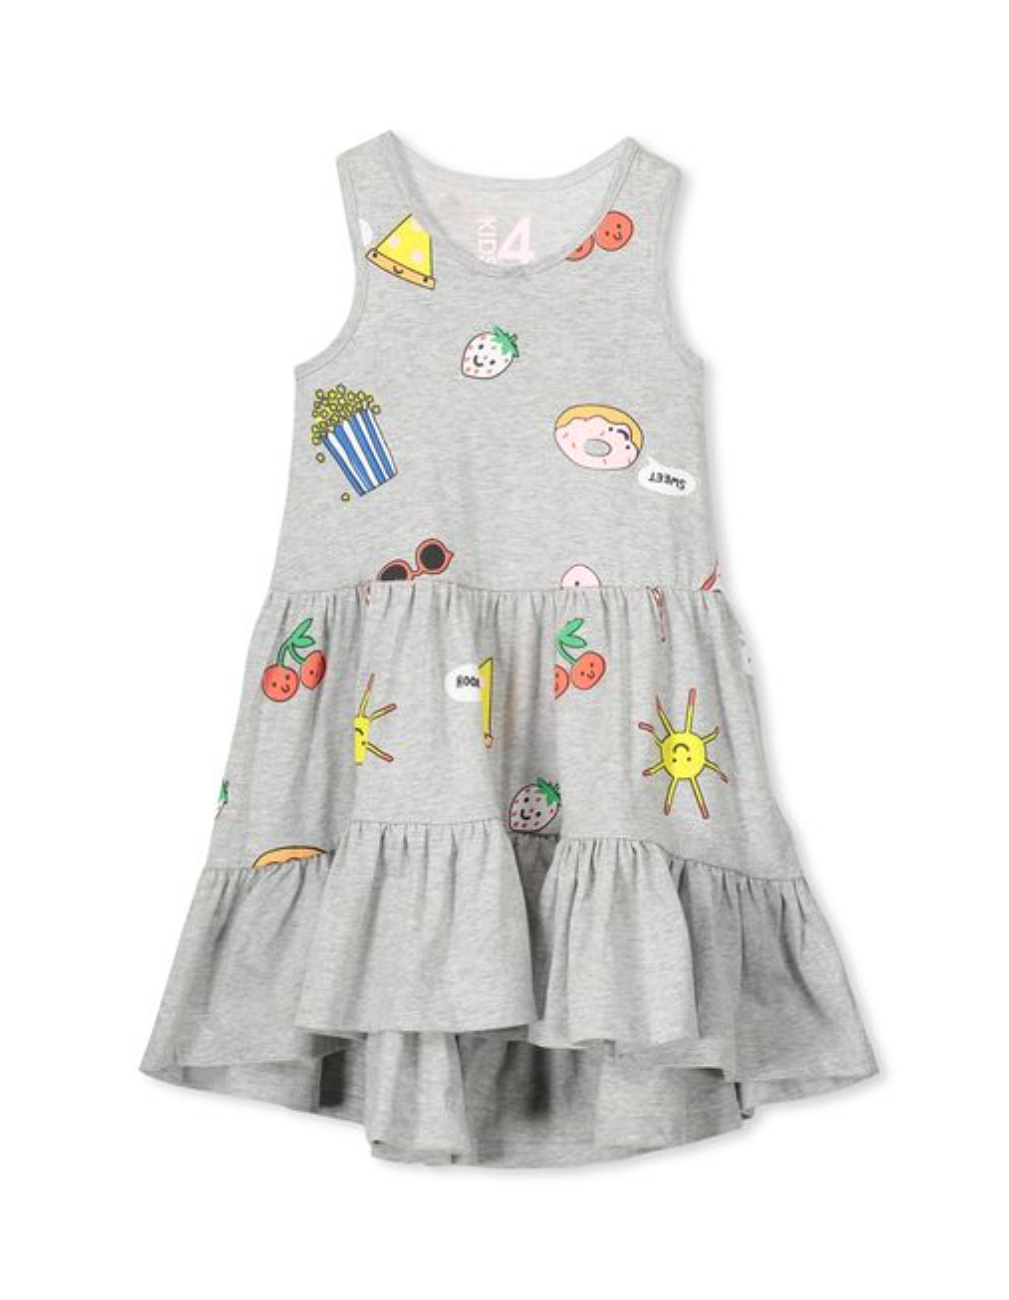 Cotton On Kids - Cotton On Kids have launched a great range of Emoji stuff. This is one of my fave's at just $24.95